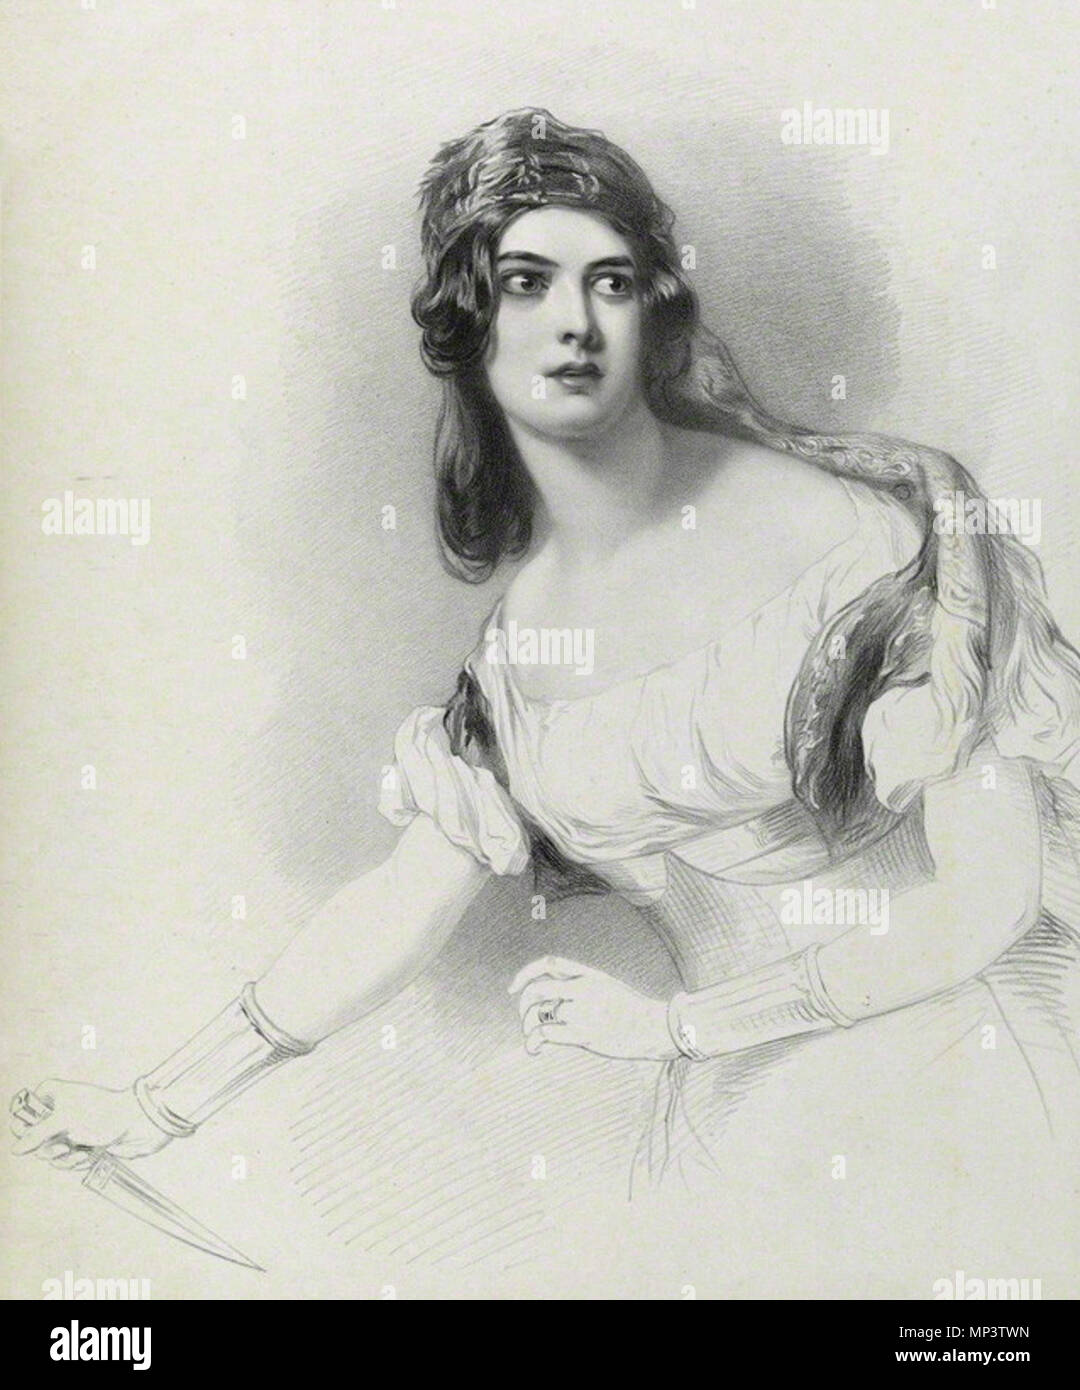 by Richard James Lane, published by  Thomas McLean, after  Sir Francis Grant, lithograph, published 1837    . English: Louisa Cranstoun Nisbett (1812-1858) . 1837.   Richard James Lane (1800–1872)   Alternative names Richard J. Lane  Description English engraver and lithographer  Date of birth/death 16 February 1800 21 November 1872  Location of birth Berkeley Castle  Authority control  : Q7326816 VIAF:59348682 ISNI:0000 0000 6658 4871 ULAN:500120153 LCCN:n81054202 SUDOC:119740117 WorldCat    , published by Thomas McLean, after Sir Francis Grant 825 Louisa Cranstoun Nisbett - Stock Image